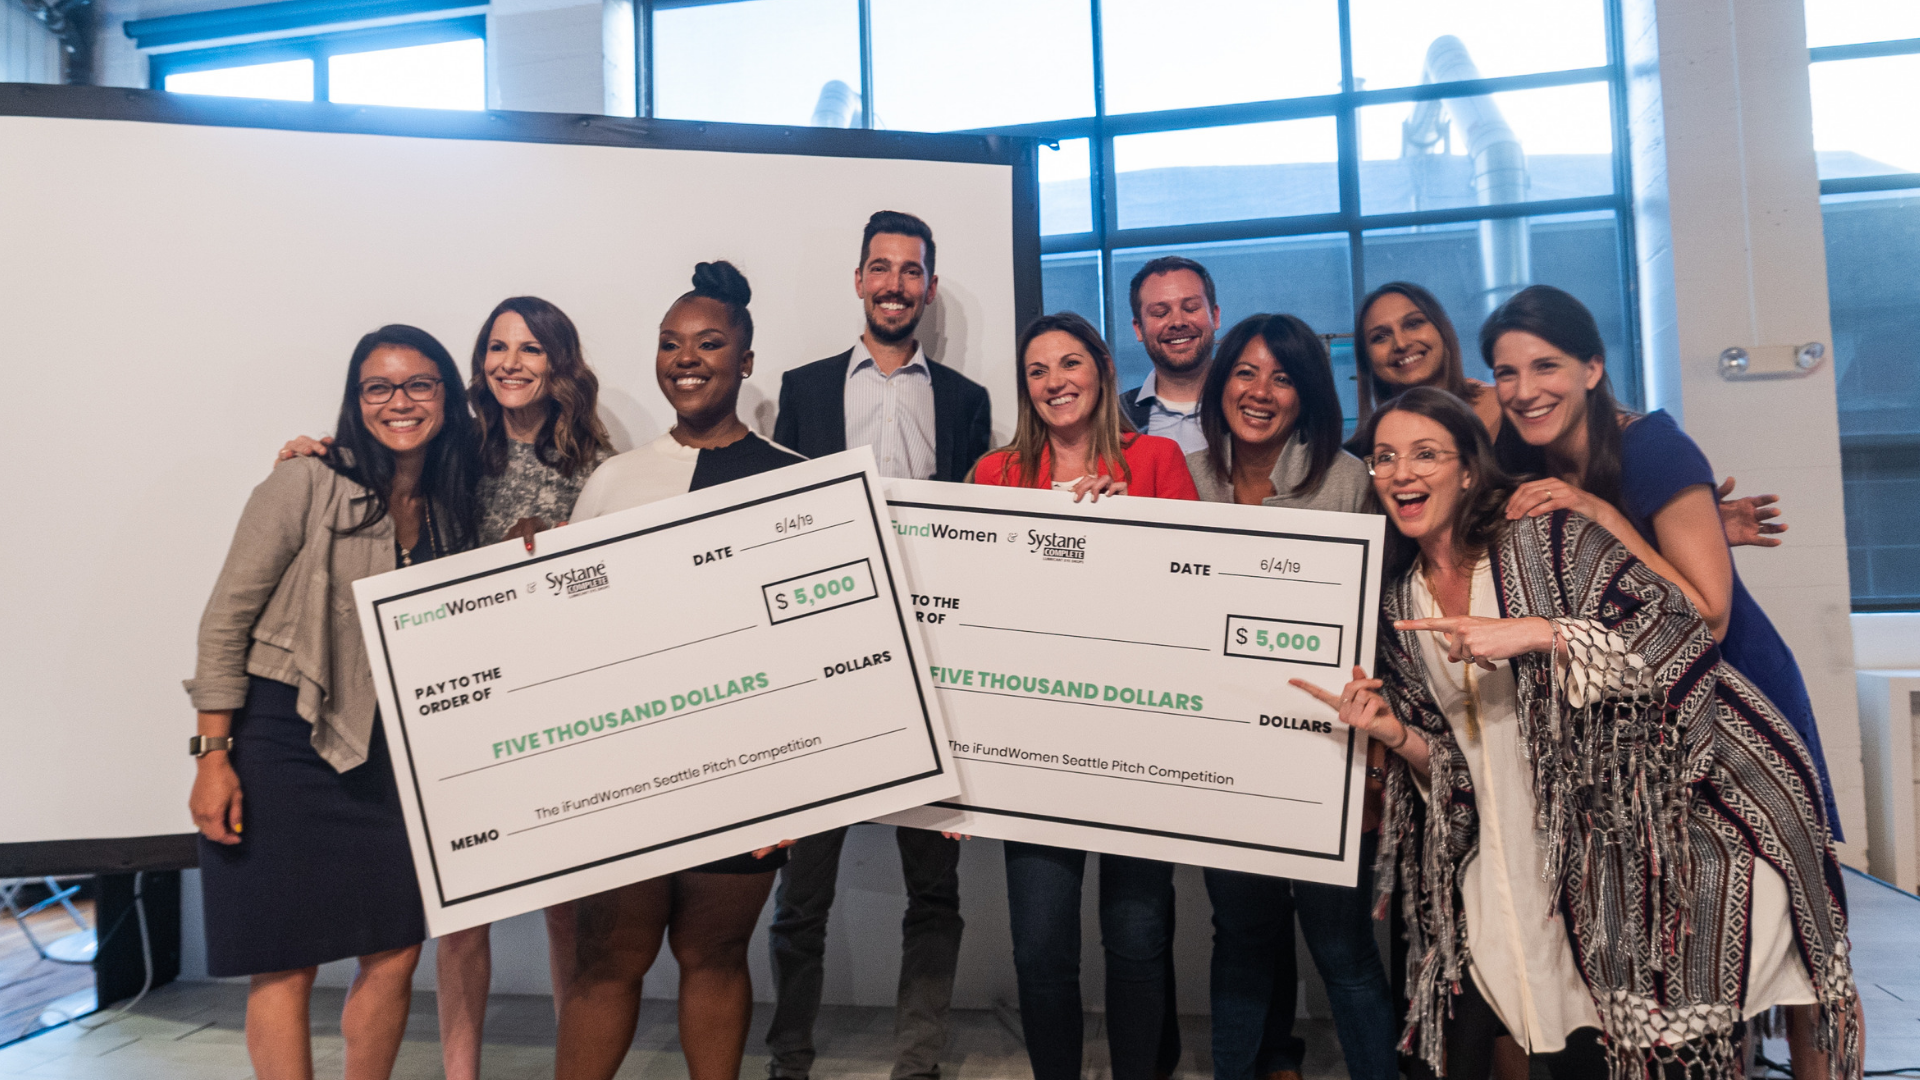 The Judges, iFundWomen team and the winners of the iFundWomen Seattle Pitch Competition: Dr. Cheryl Ingram, Founder & CEO,  Diverse City LLC  & Sarah Haggard, Founder & CEO,  Tribute .